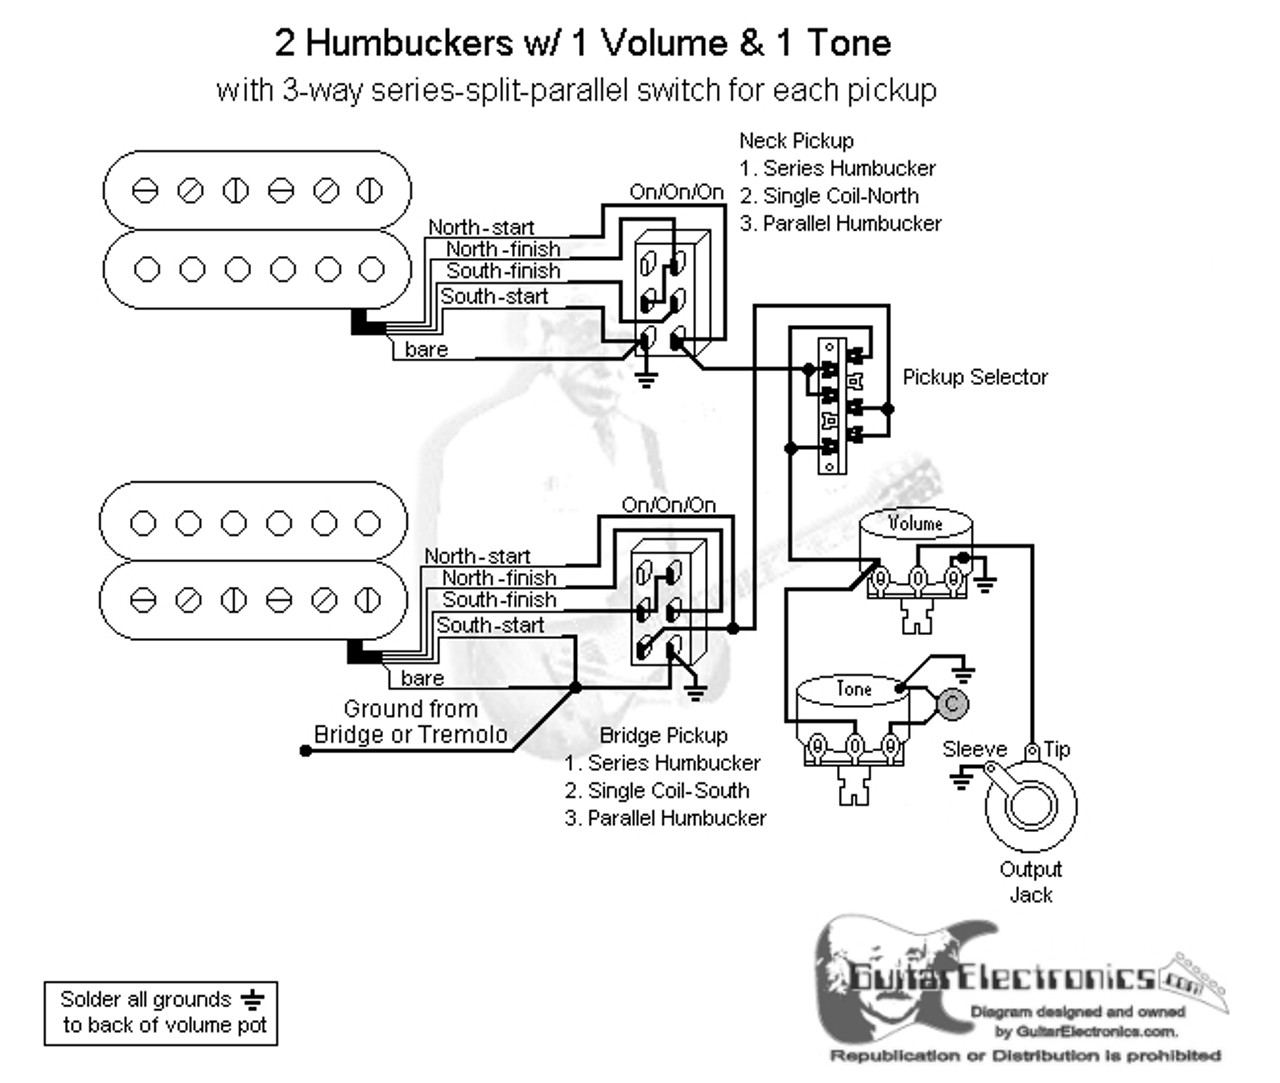 2 humbuckers 3 way lever switch 1 volume 1 tone series split import strat wiring diagram [ 1280 x 1083 Pixel ]